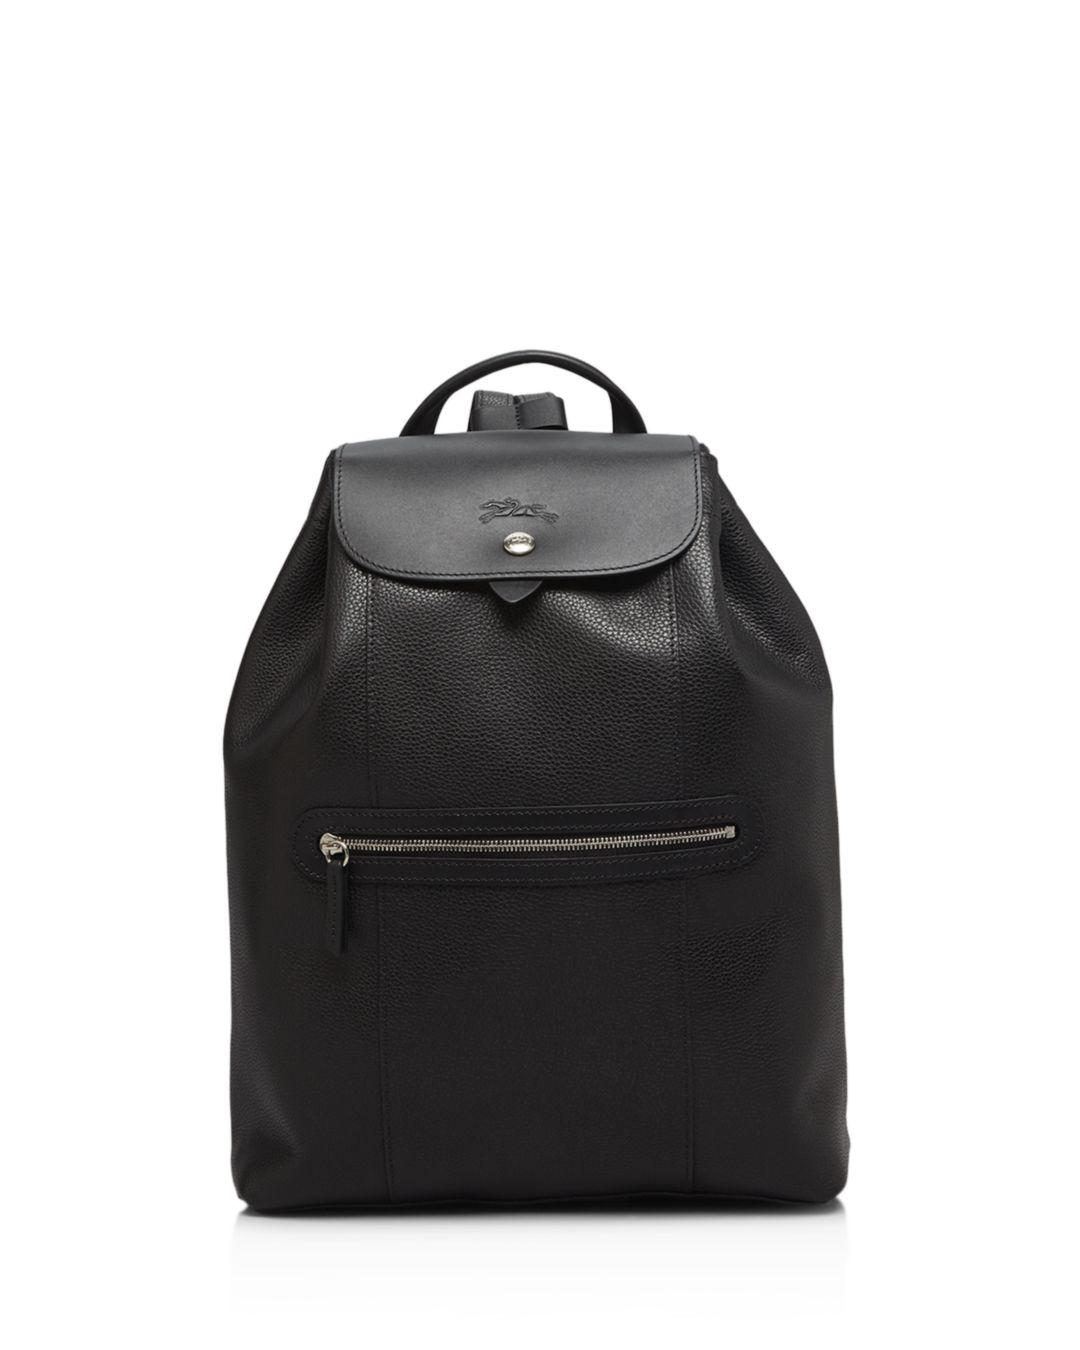 785ea094f50f Lyst - Longchamp Veau Foulonne Backpack in Black - Save 20%